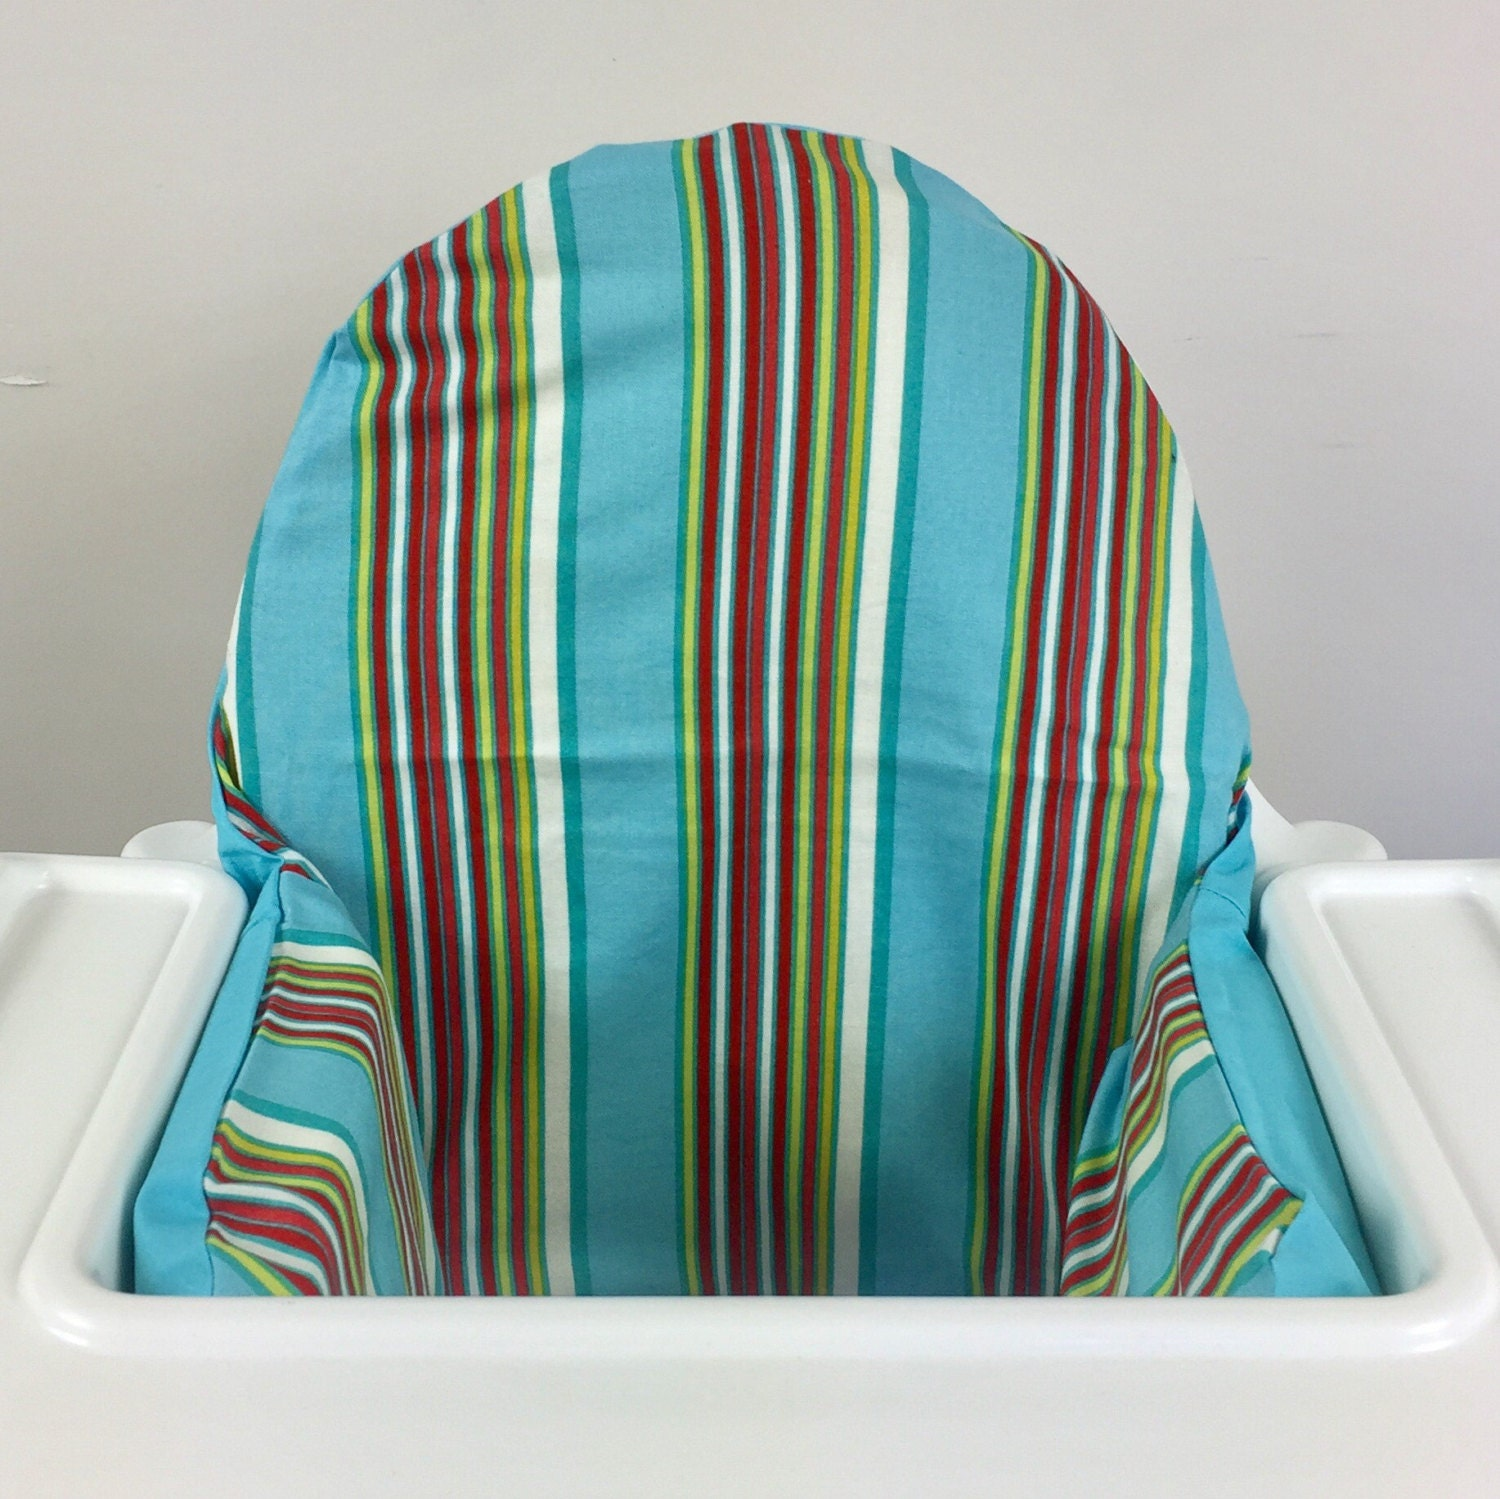 striped ikea antilop highchair high chair cushion cover with. Black Bedroom Furniture Sets. Home Design Ideas